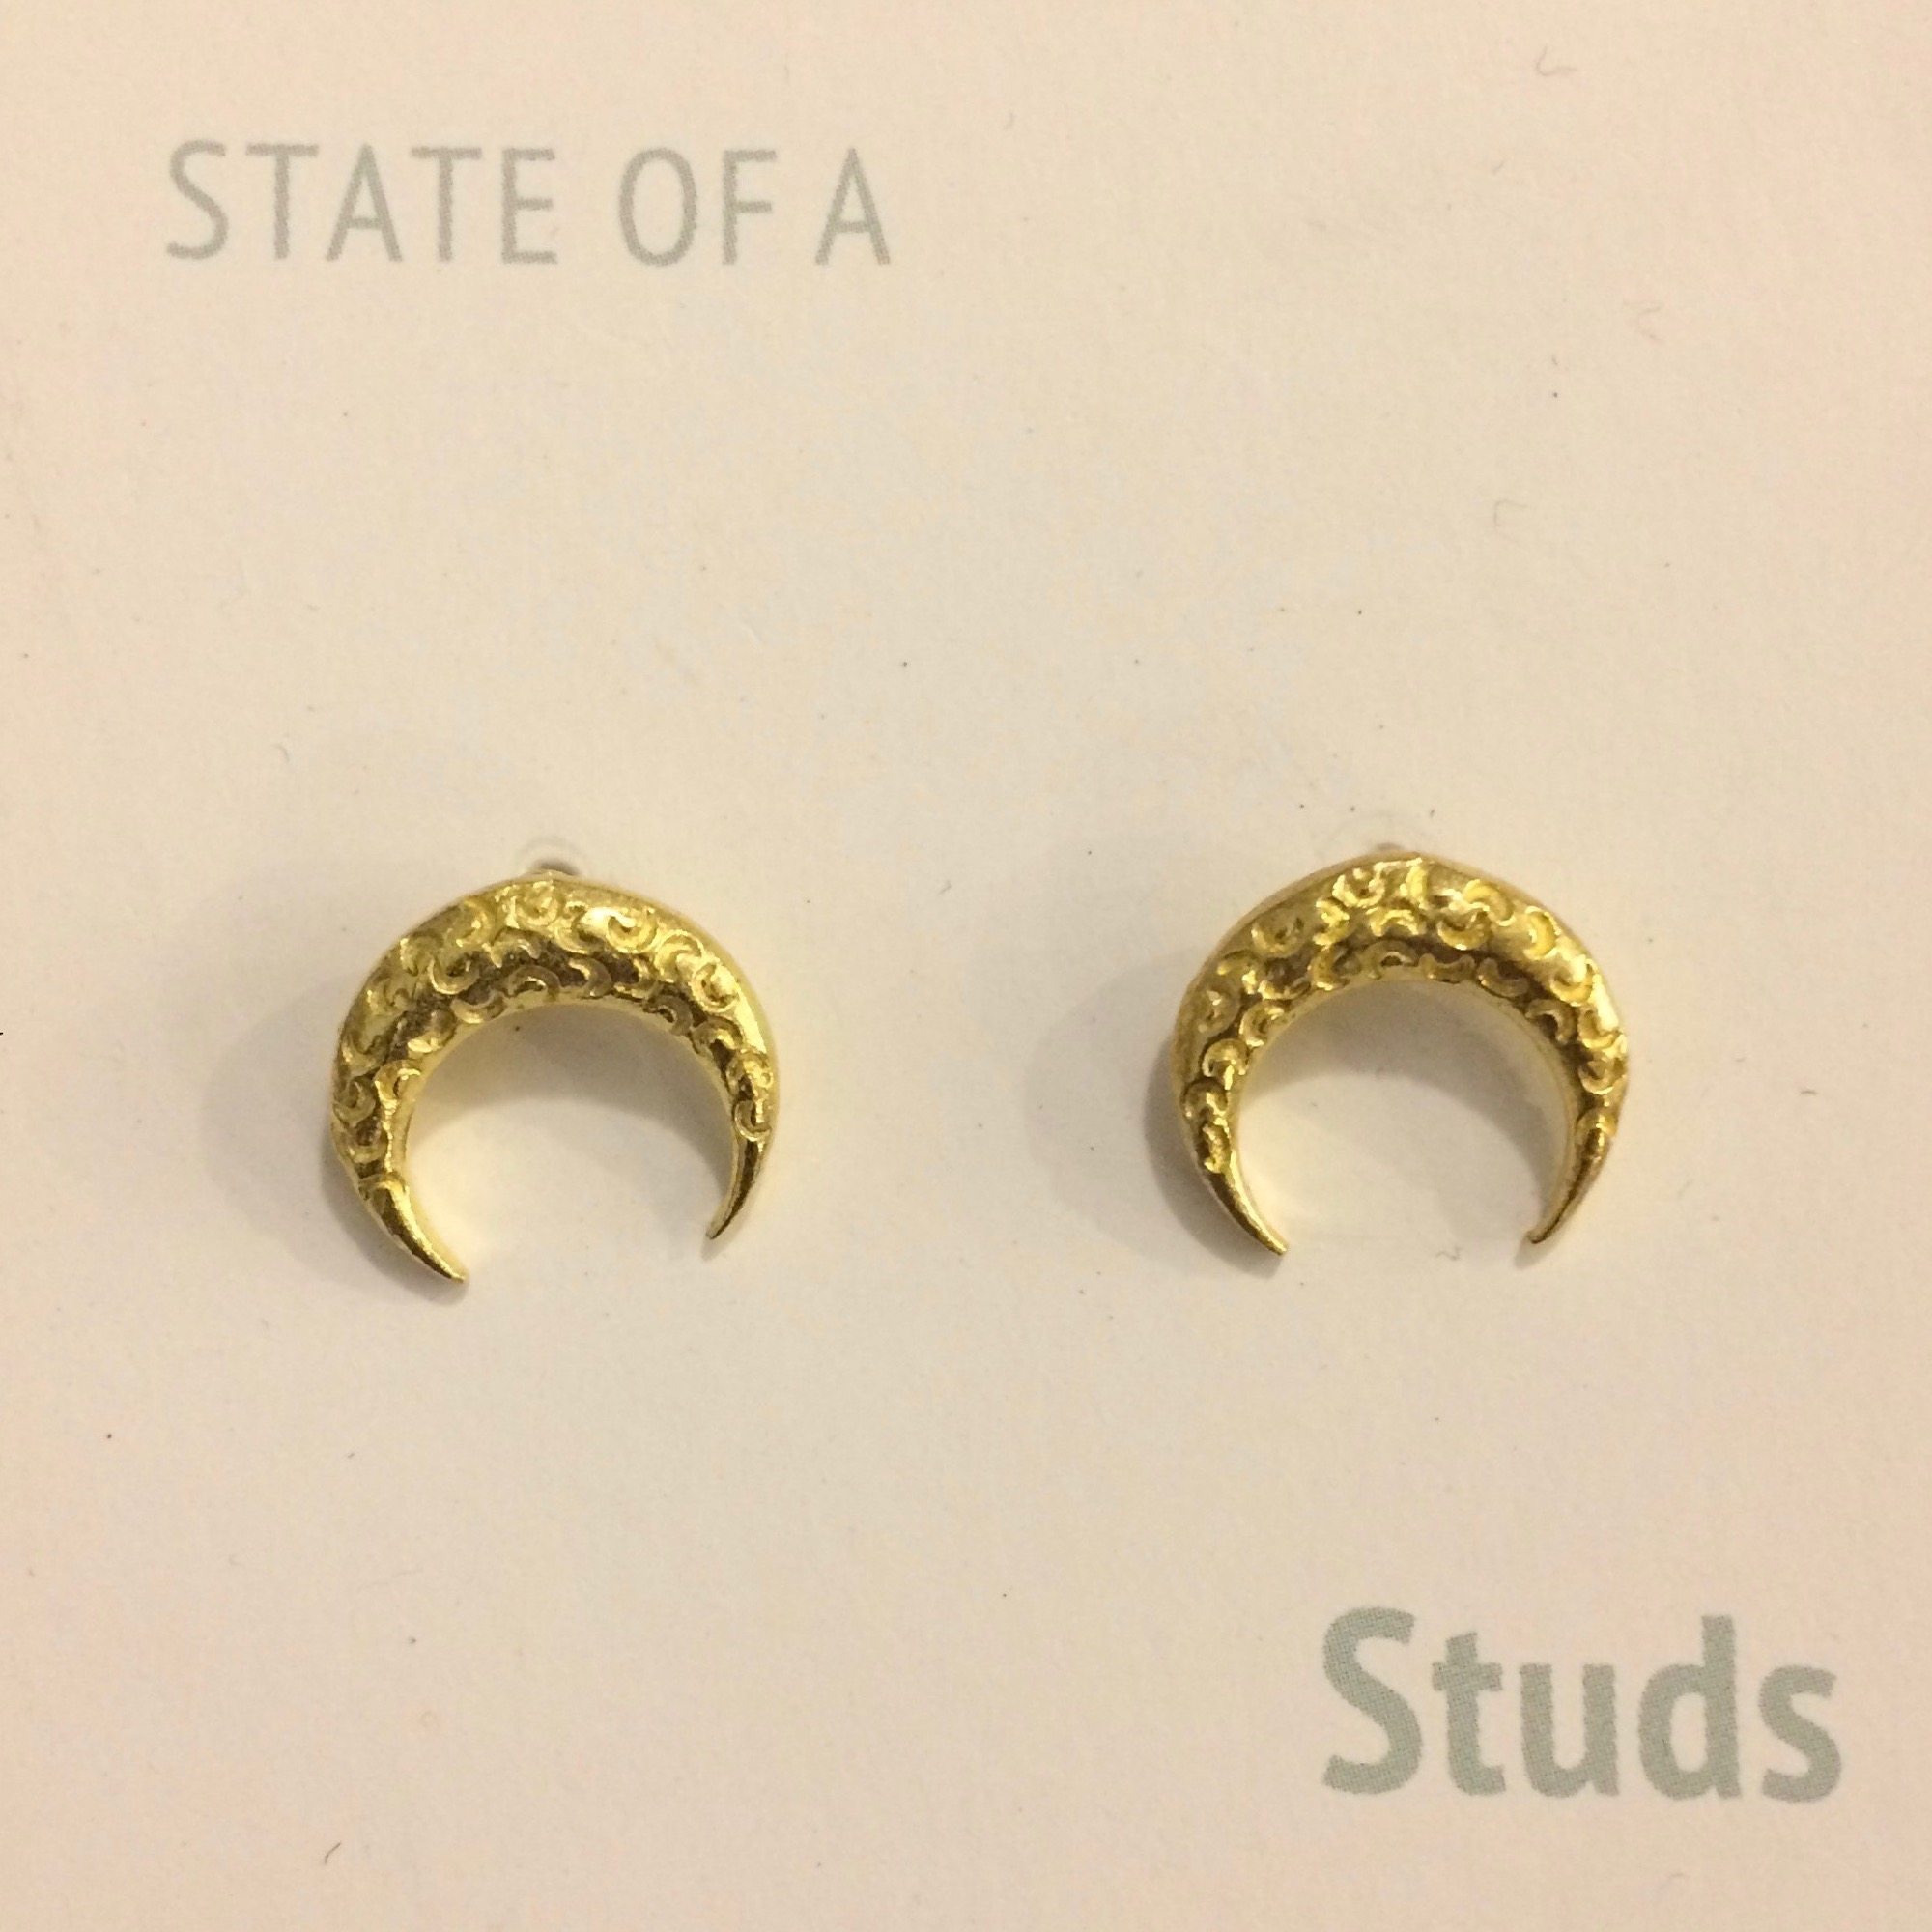 Textured Brass Moon Studs by State of A